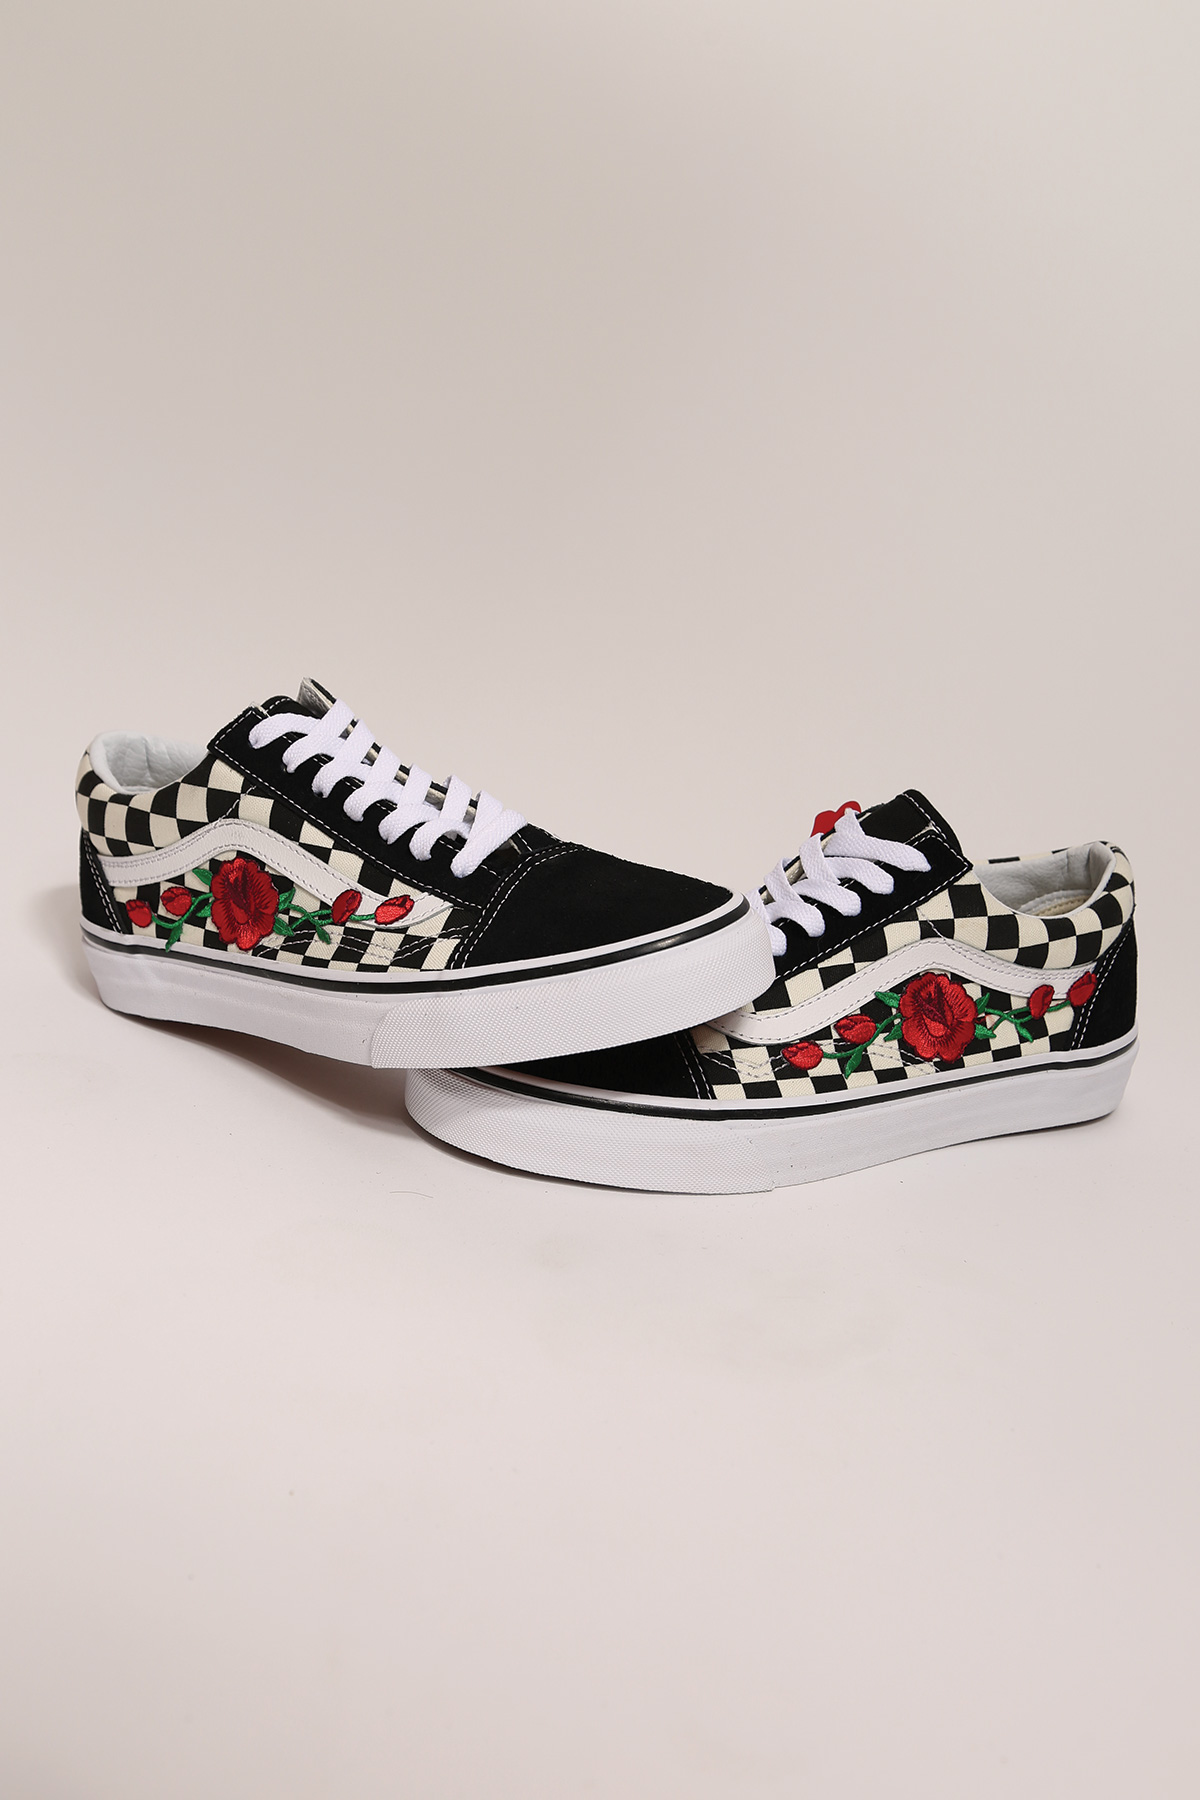 custom rose vans checkered old skool low top     iamkoko la custom rose vans checkered old skool low top